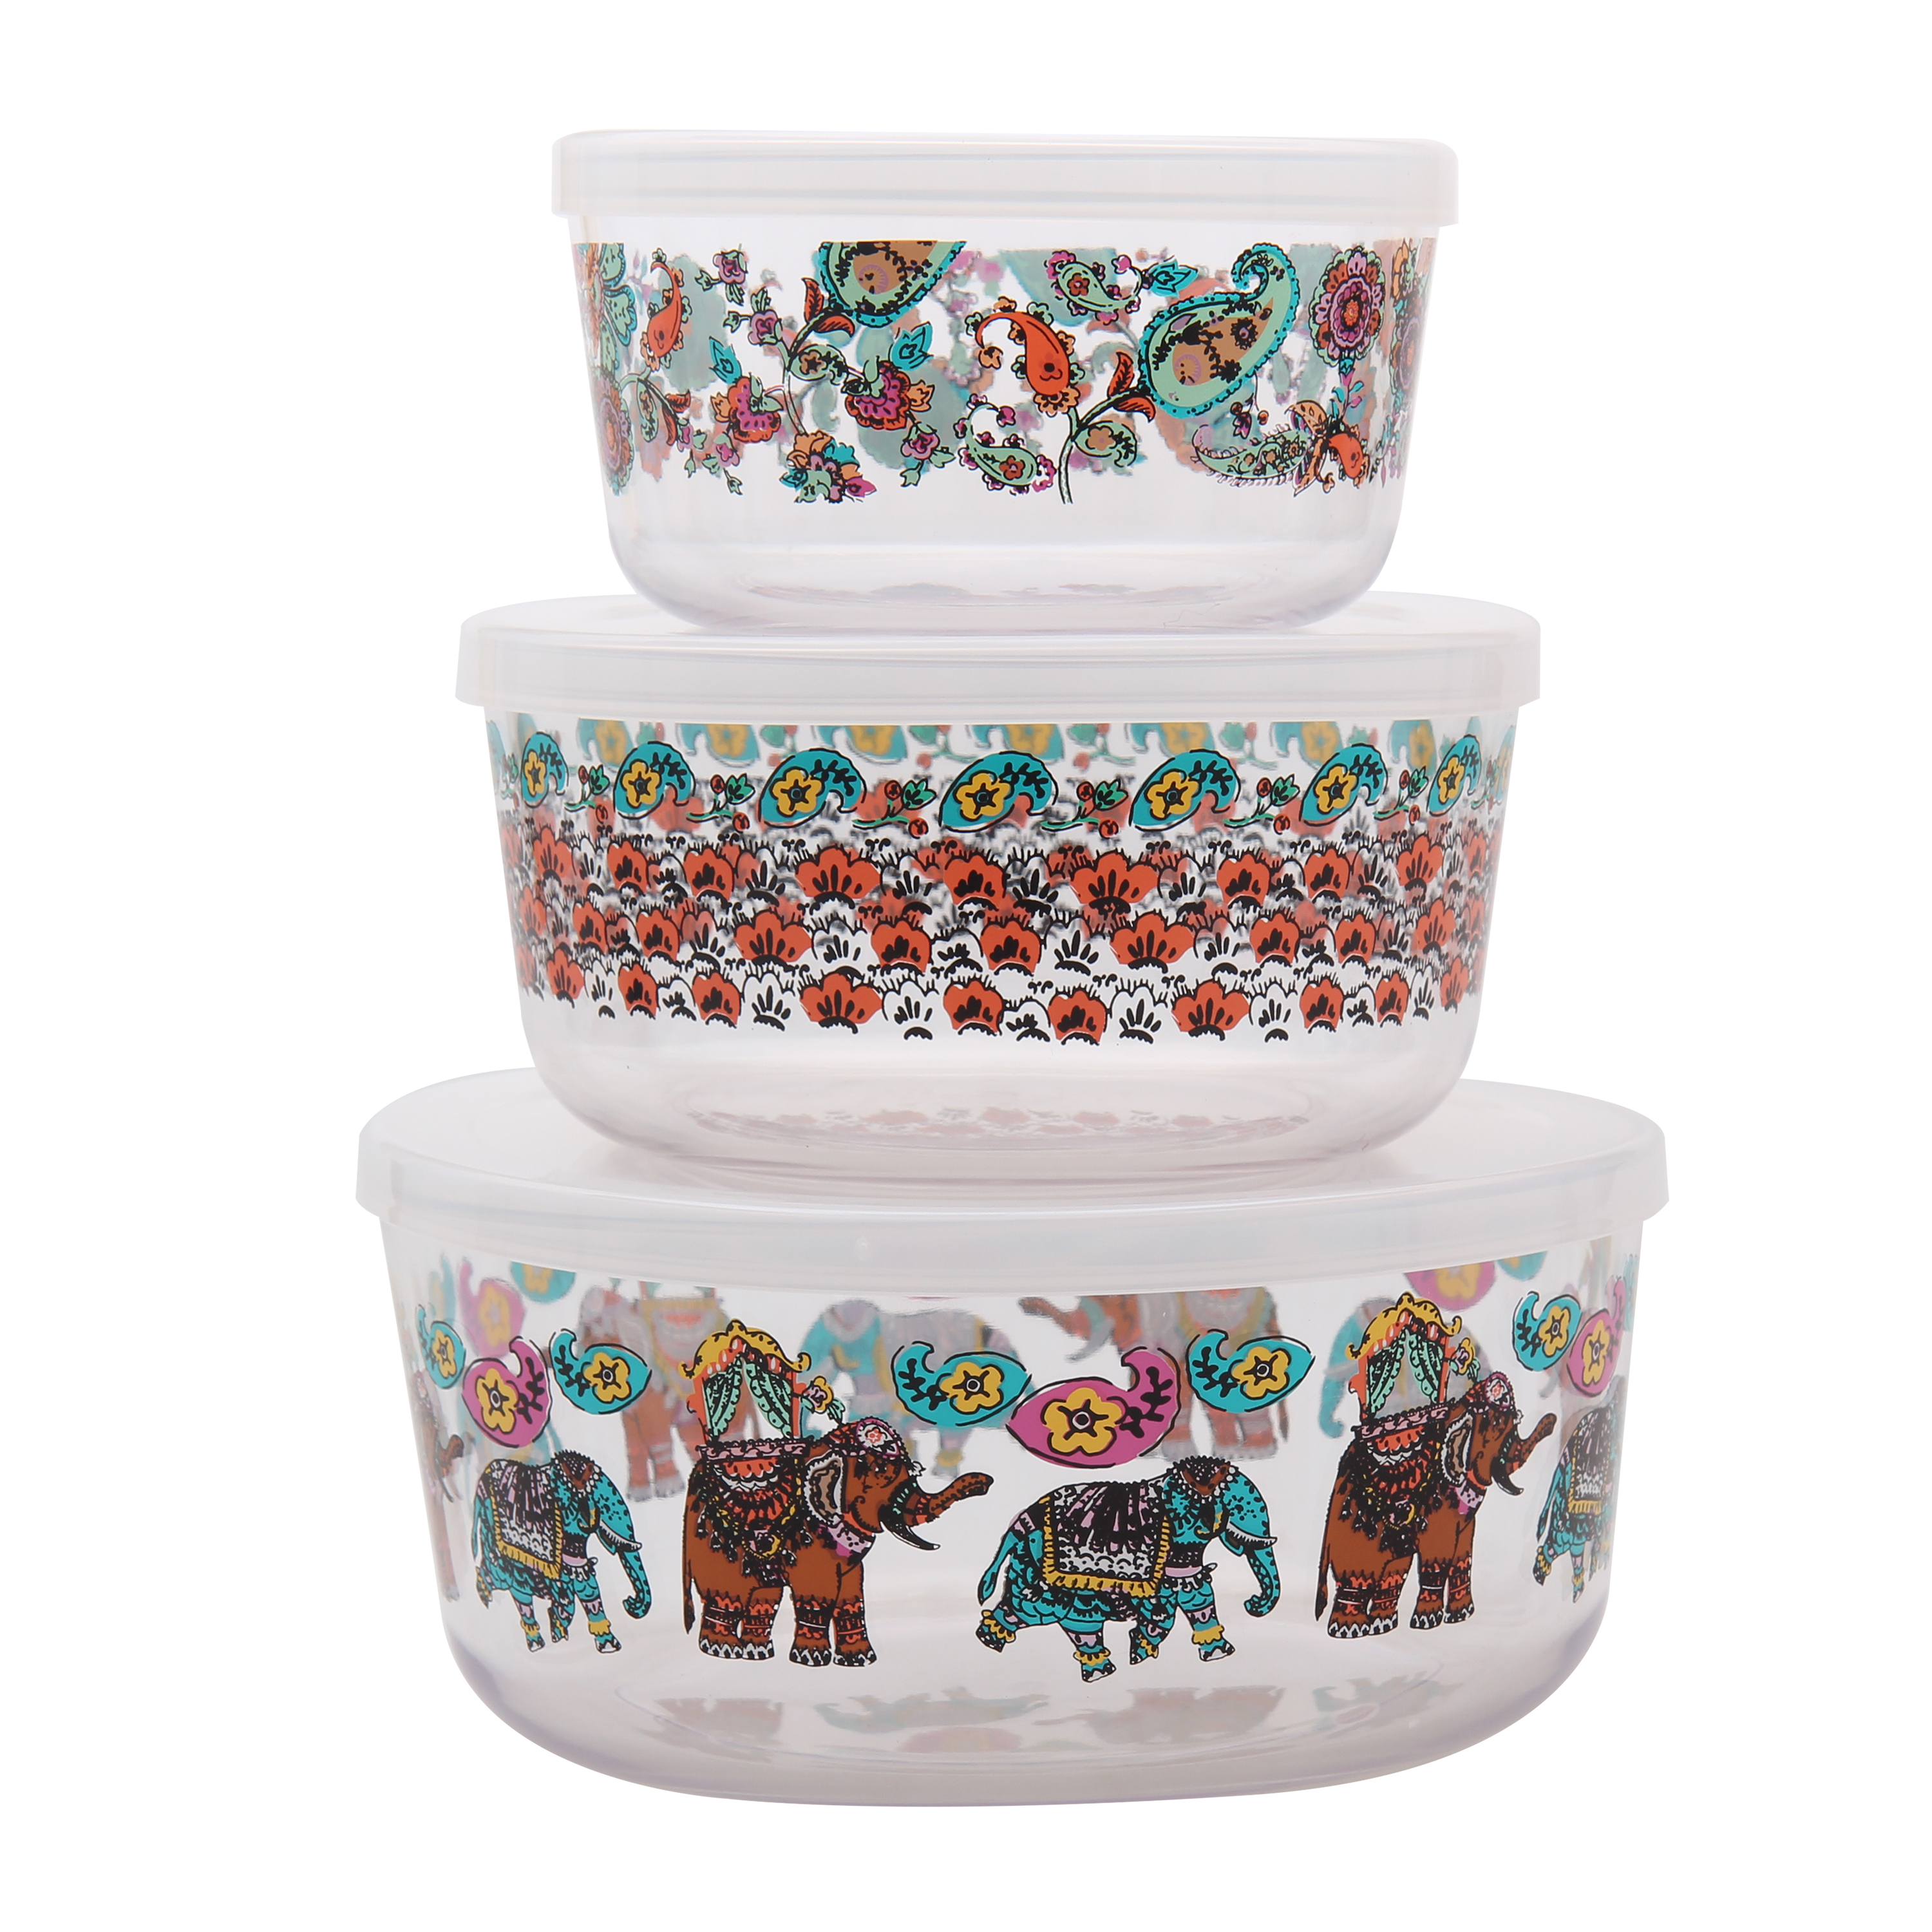 Mainstays Mumbai 3 Piece Bowl Set